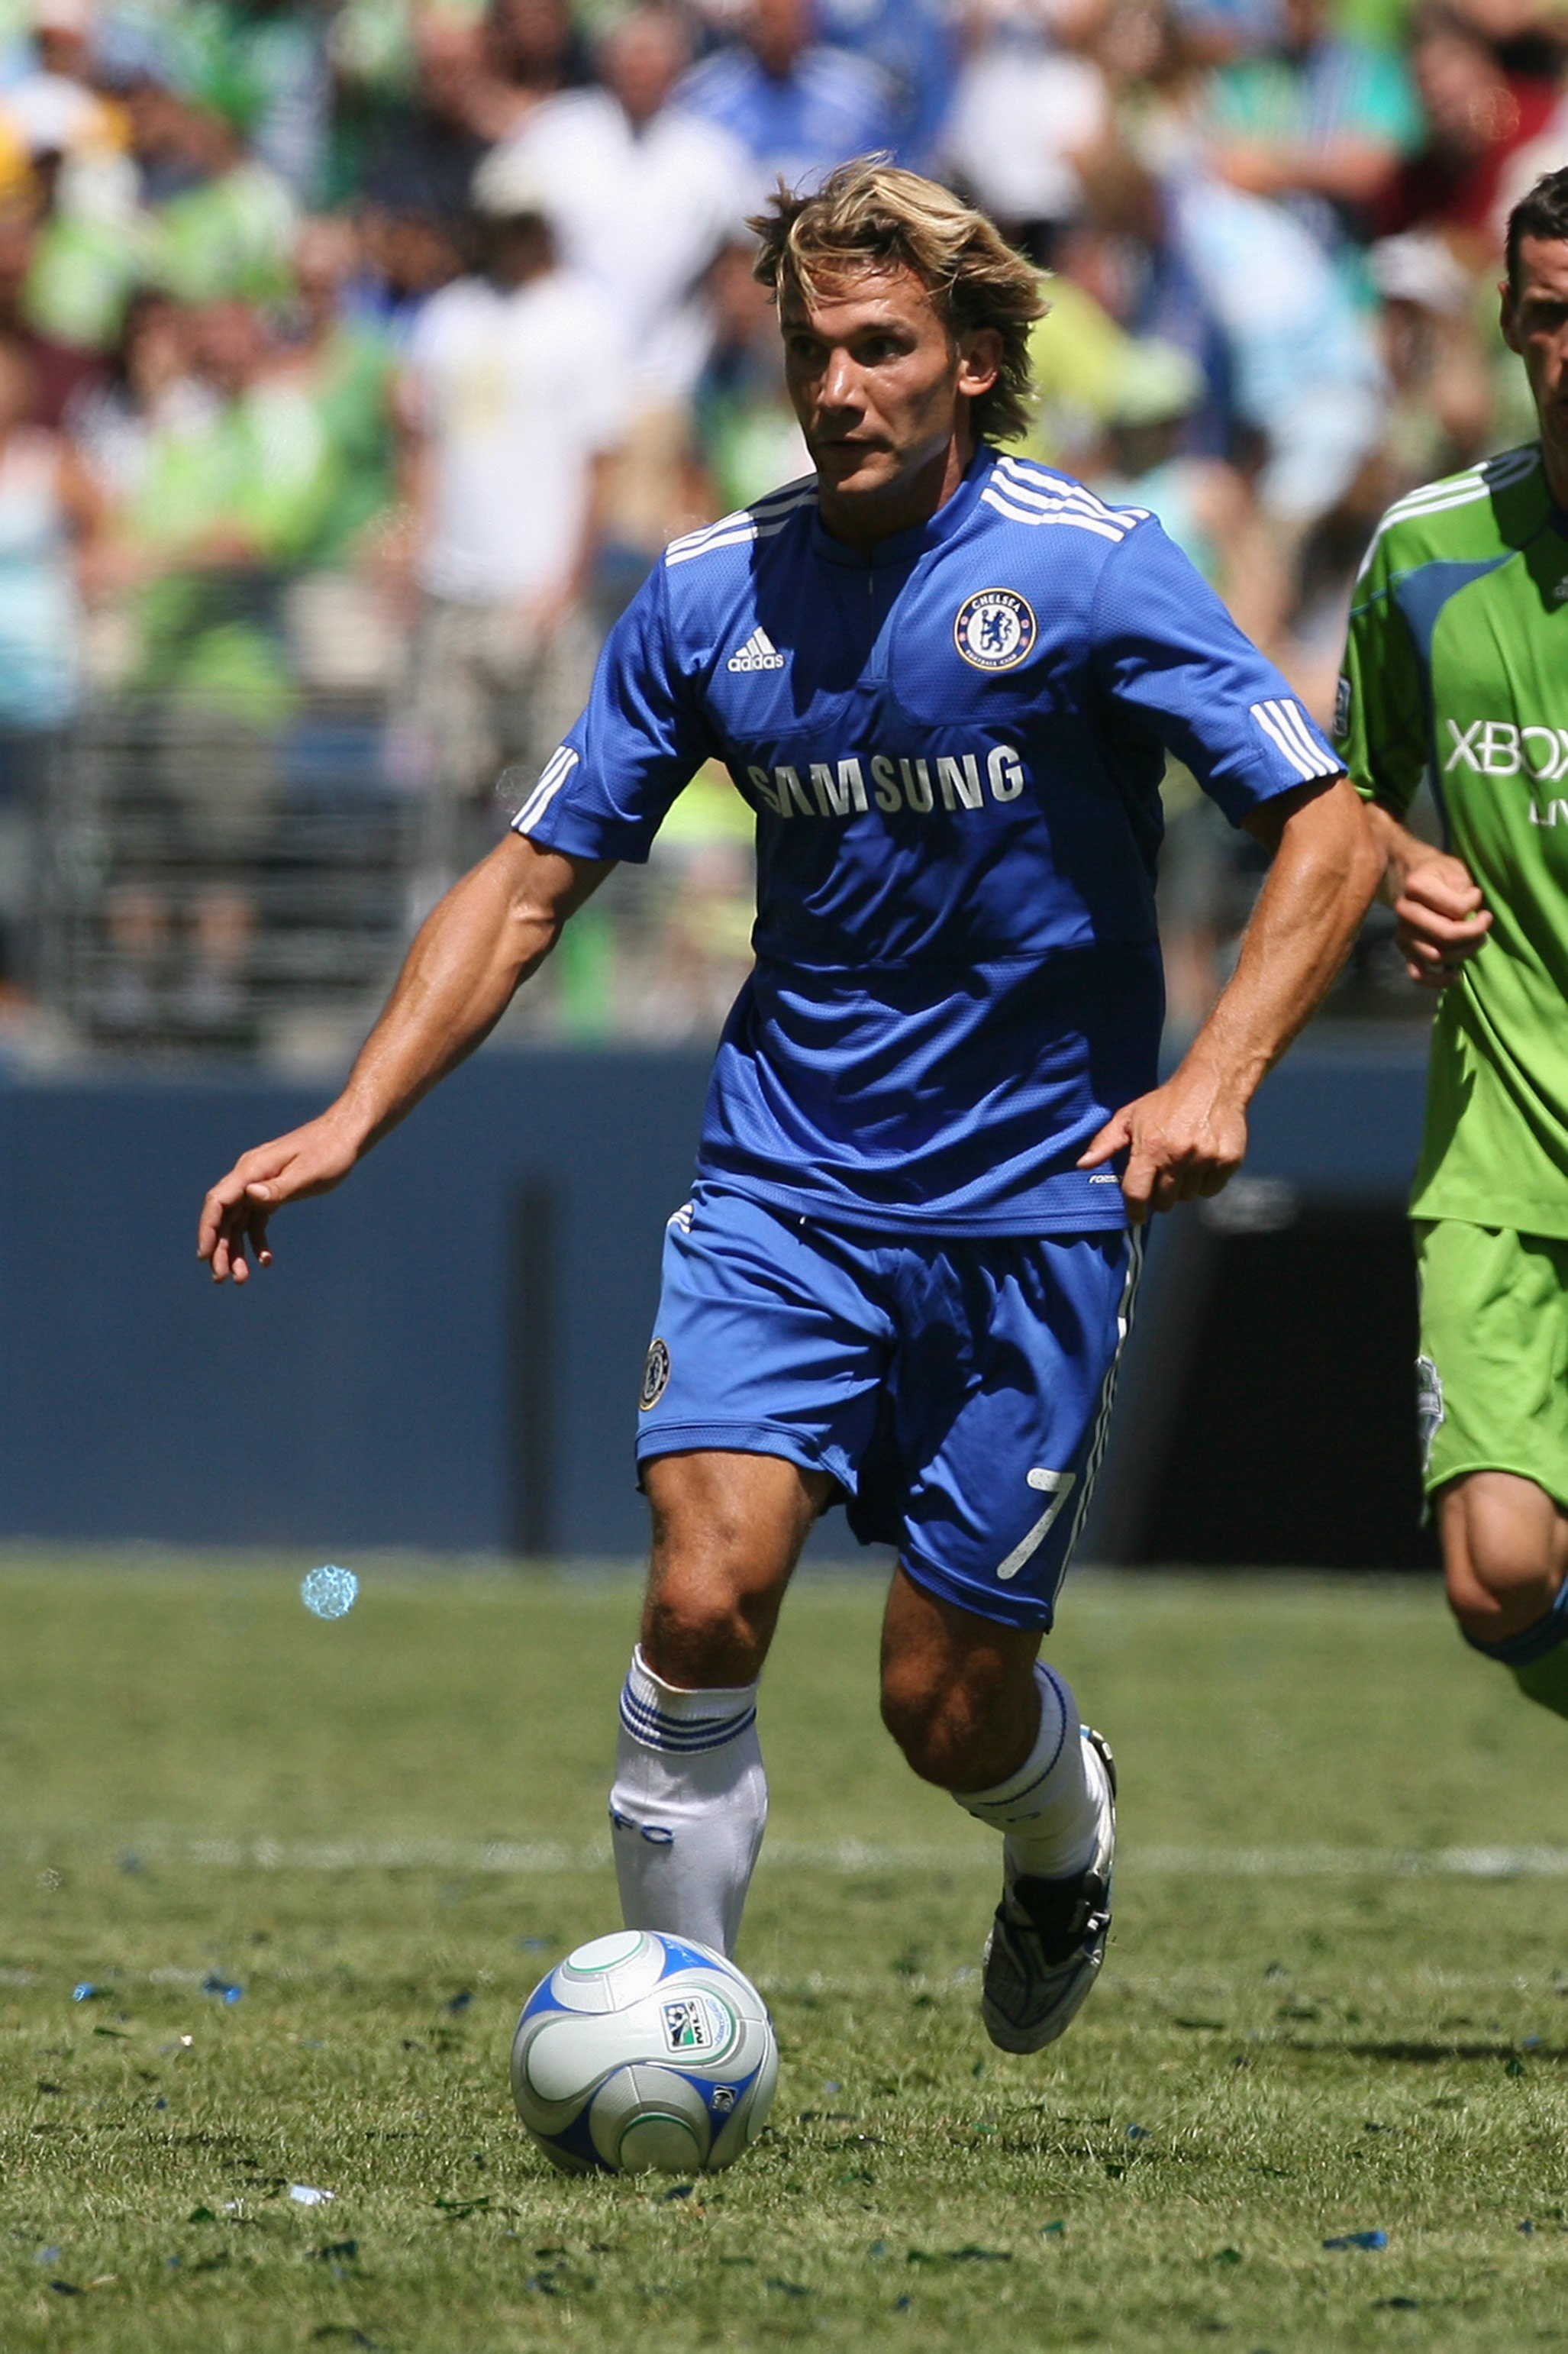 SEATTLE - JULY 18:  Andriy Shevchenko #7 of Chelsea FC dribbles the ball against Seattle Sounders FC on July 18, 2009 at Qwest Field in Seattle, Washington. (Photo by Otto Greule Jr/Getty Images)